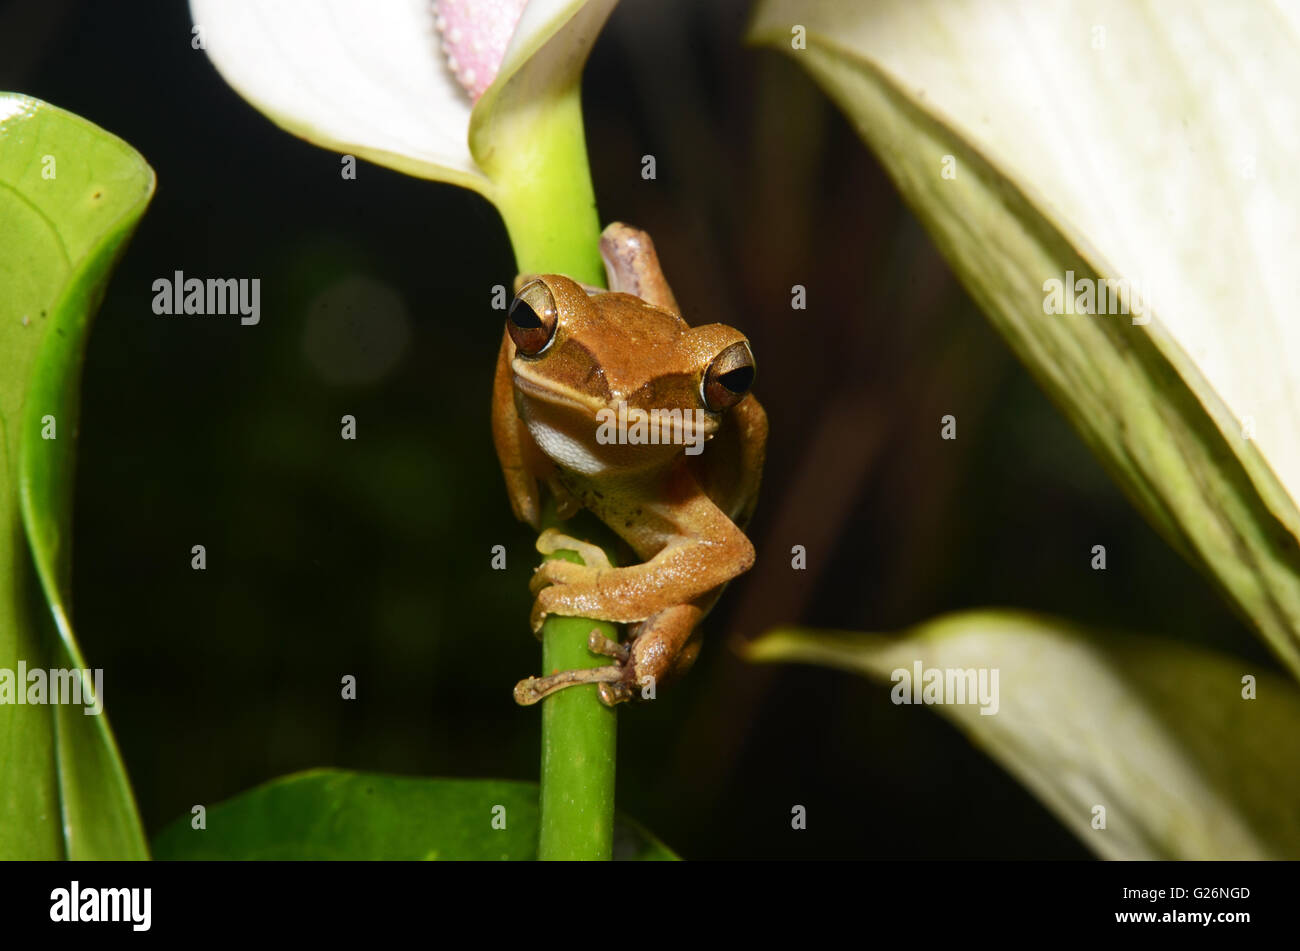 A tree frog on a flower stem, Khao Sok, Thailand - Stock Image